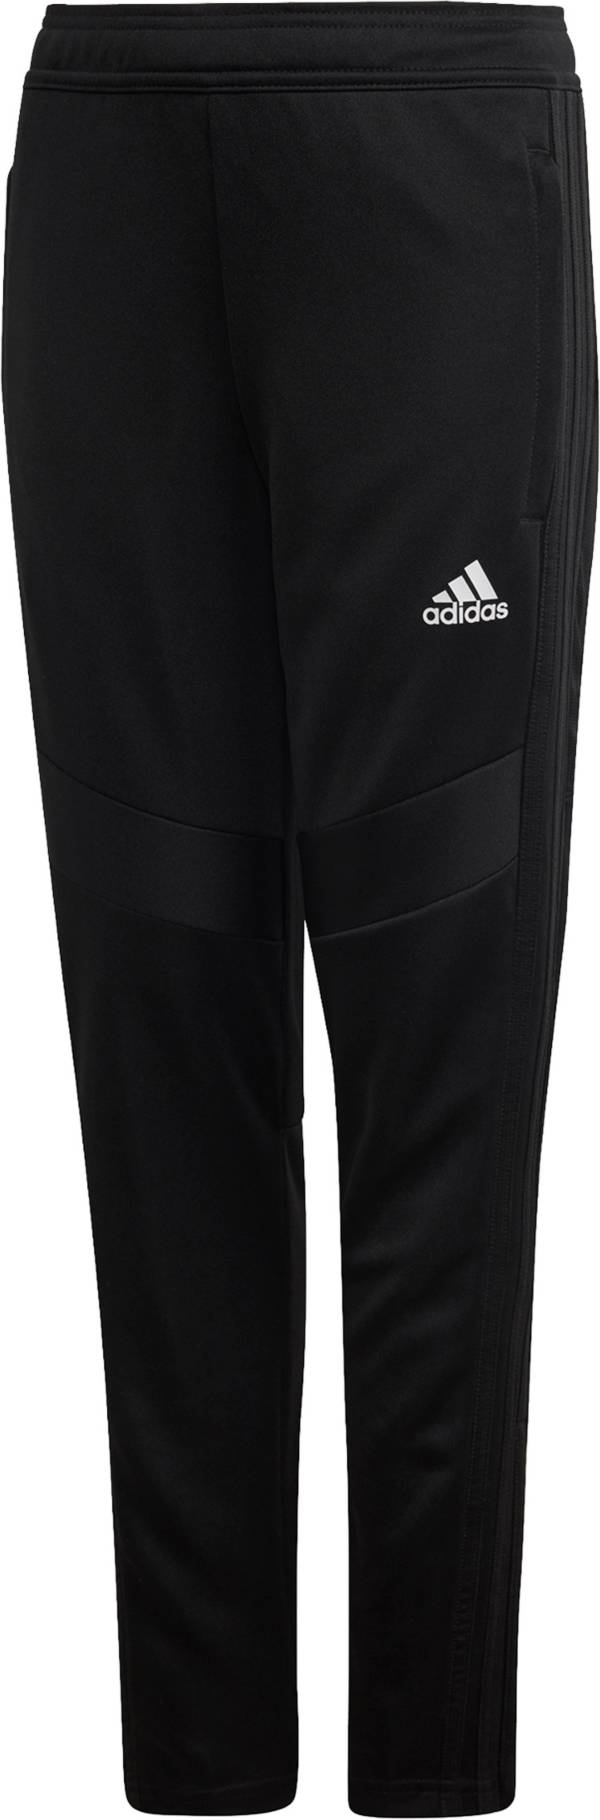 adidas Girls' Tiro Training Pants product image